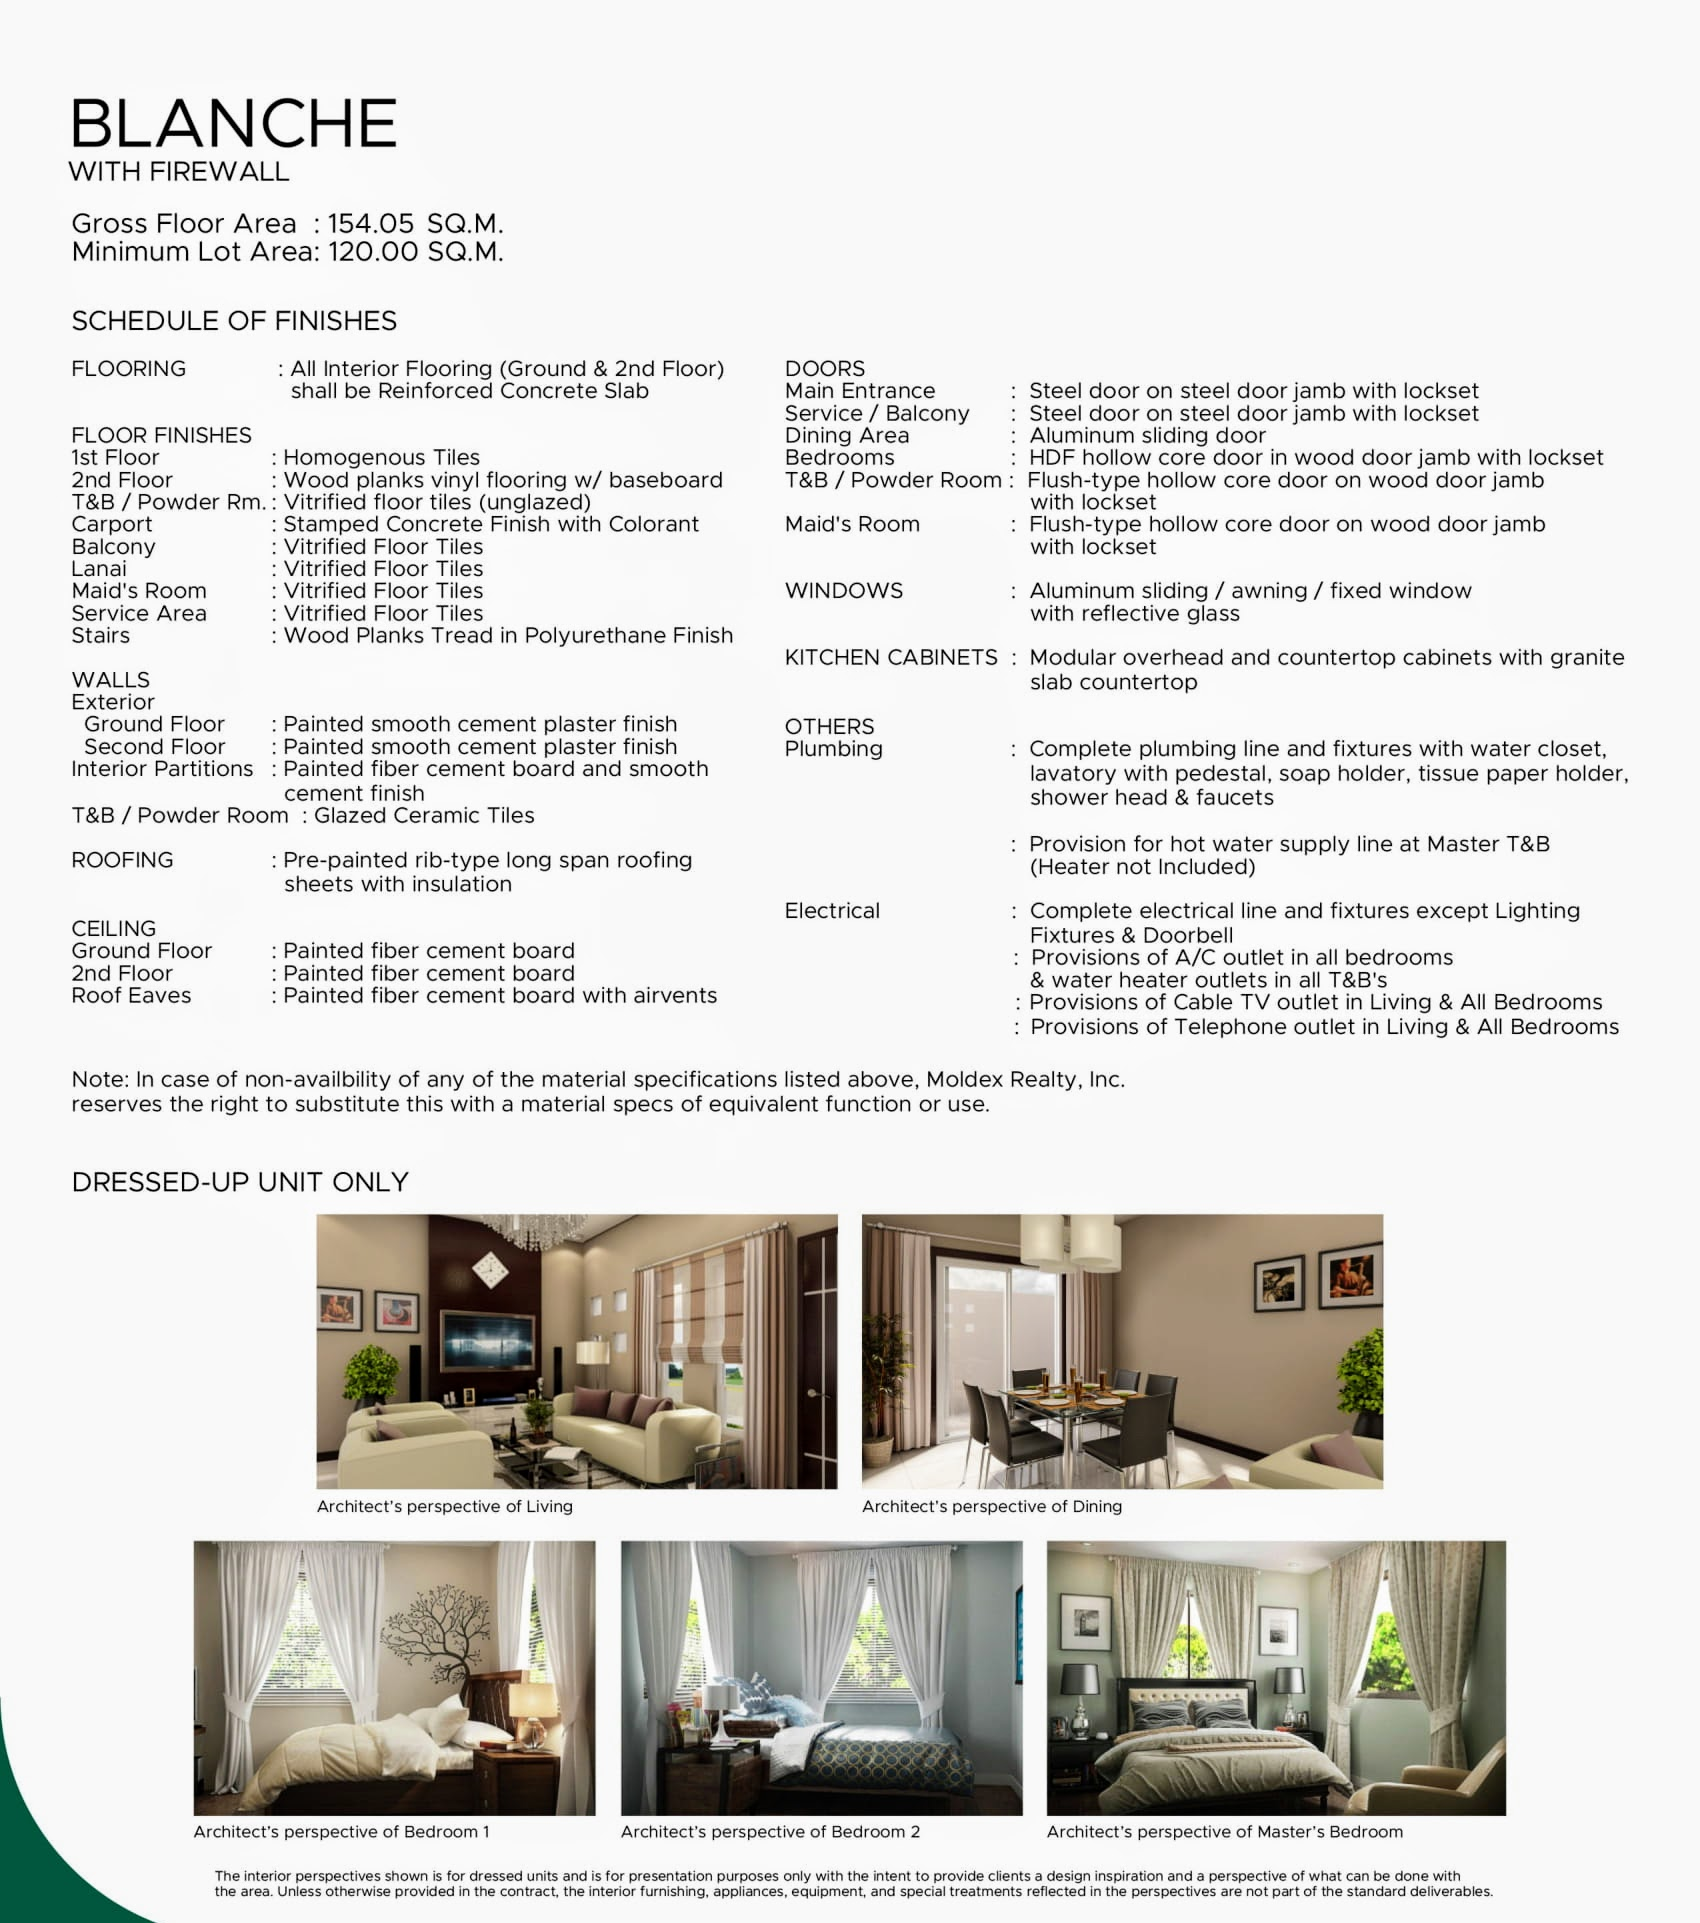 Terra Cielo, Metrogate Silang Estates Blanche unit finishes